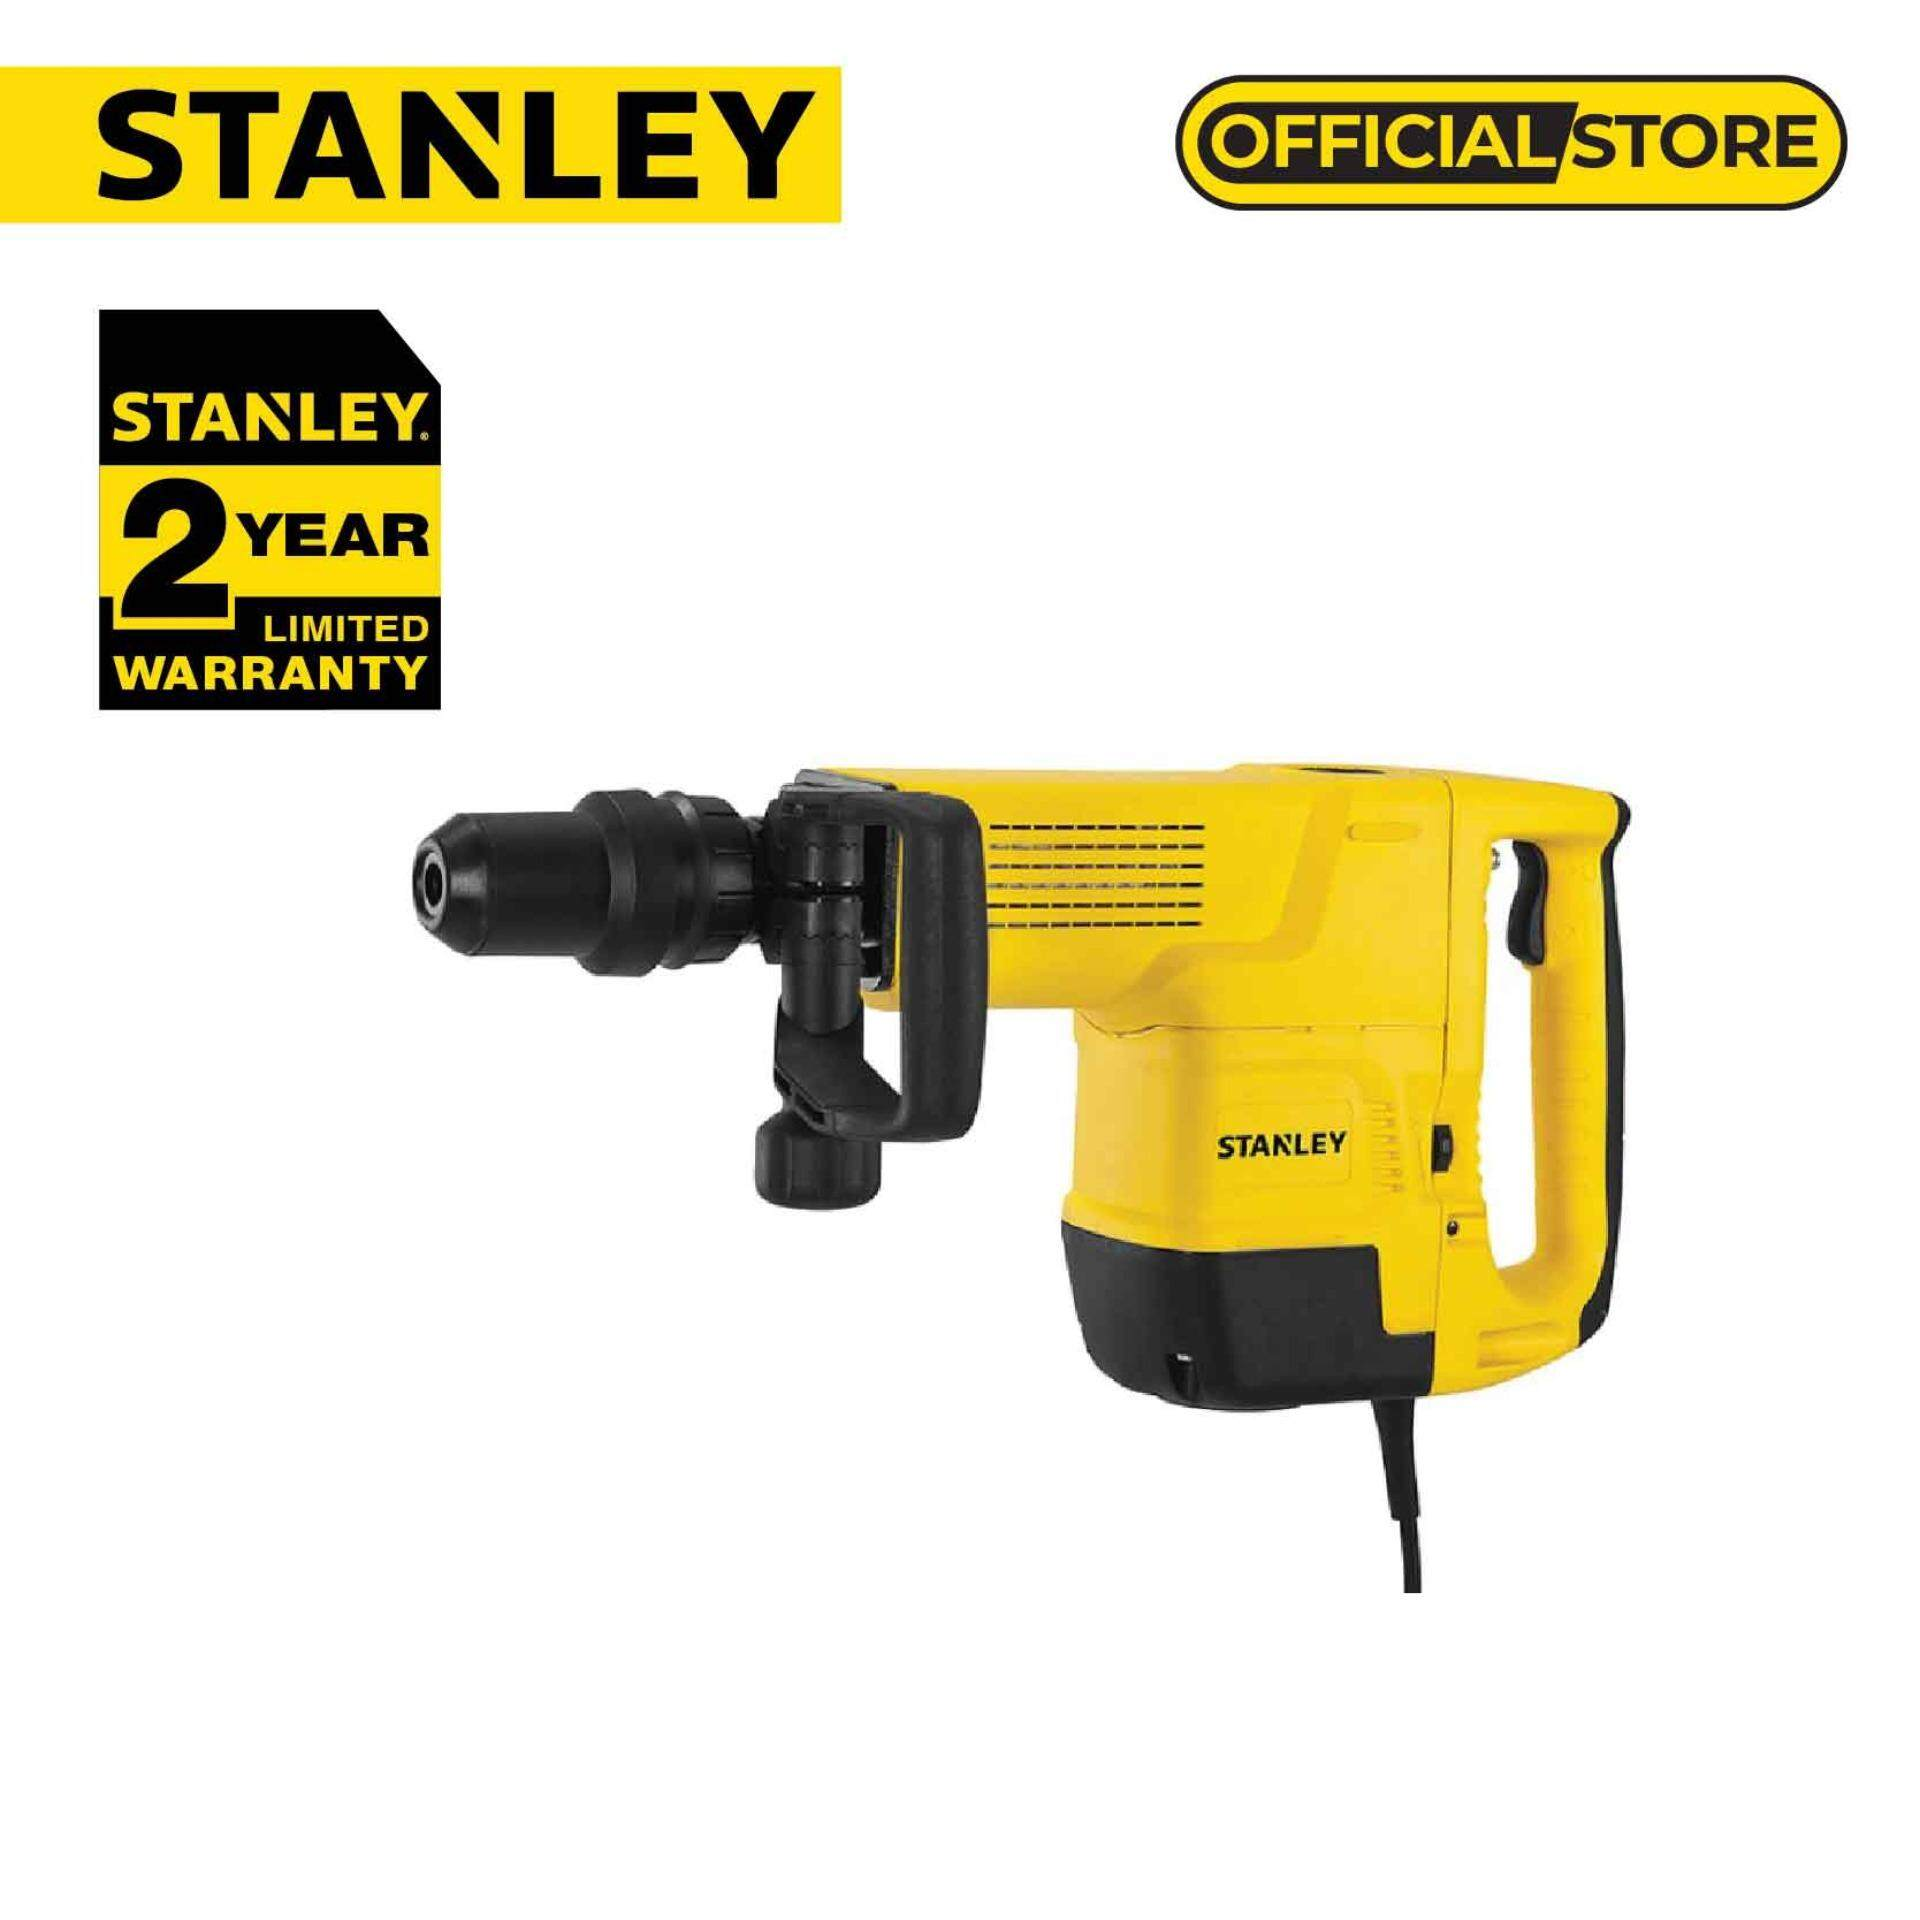 Stanley STHM10K XD-10kg SDS Max Demolition Hammer (Yellow)